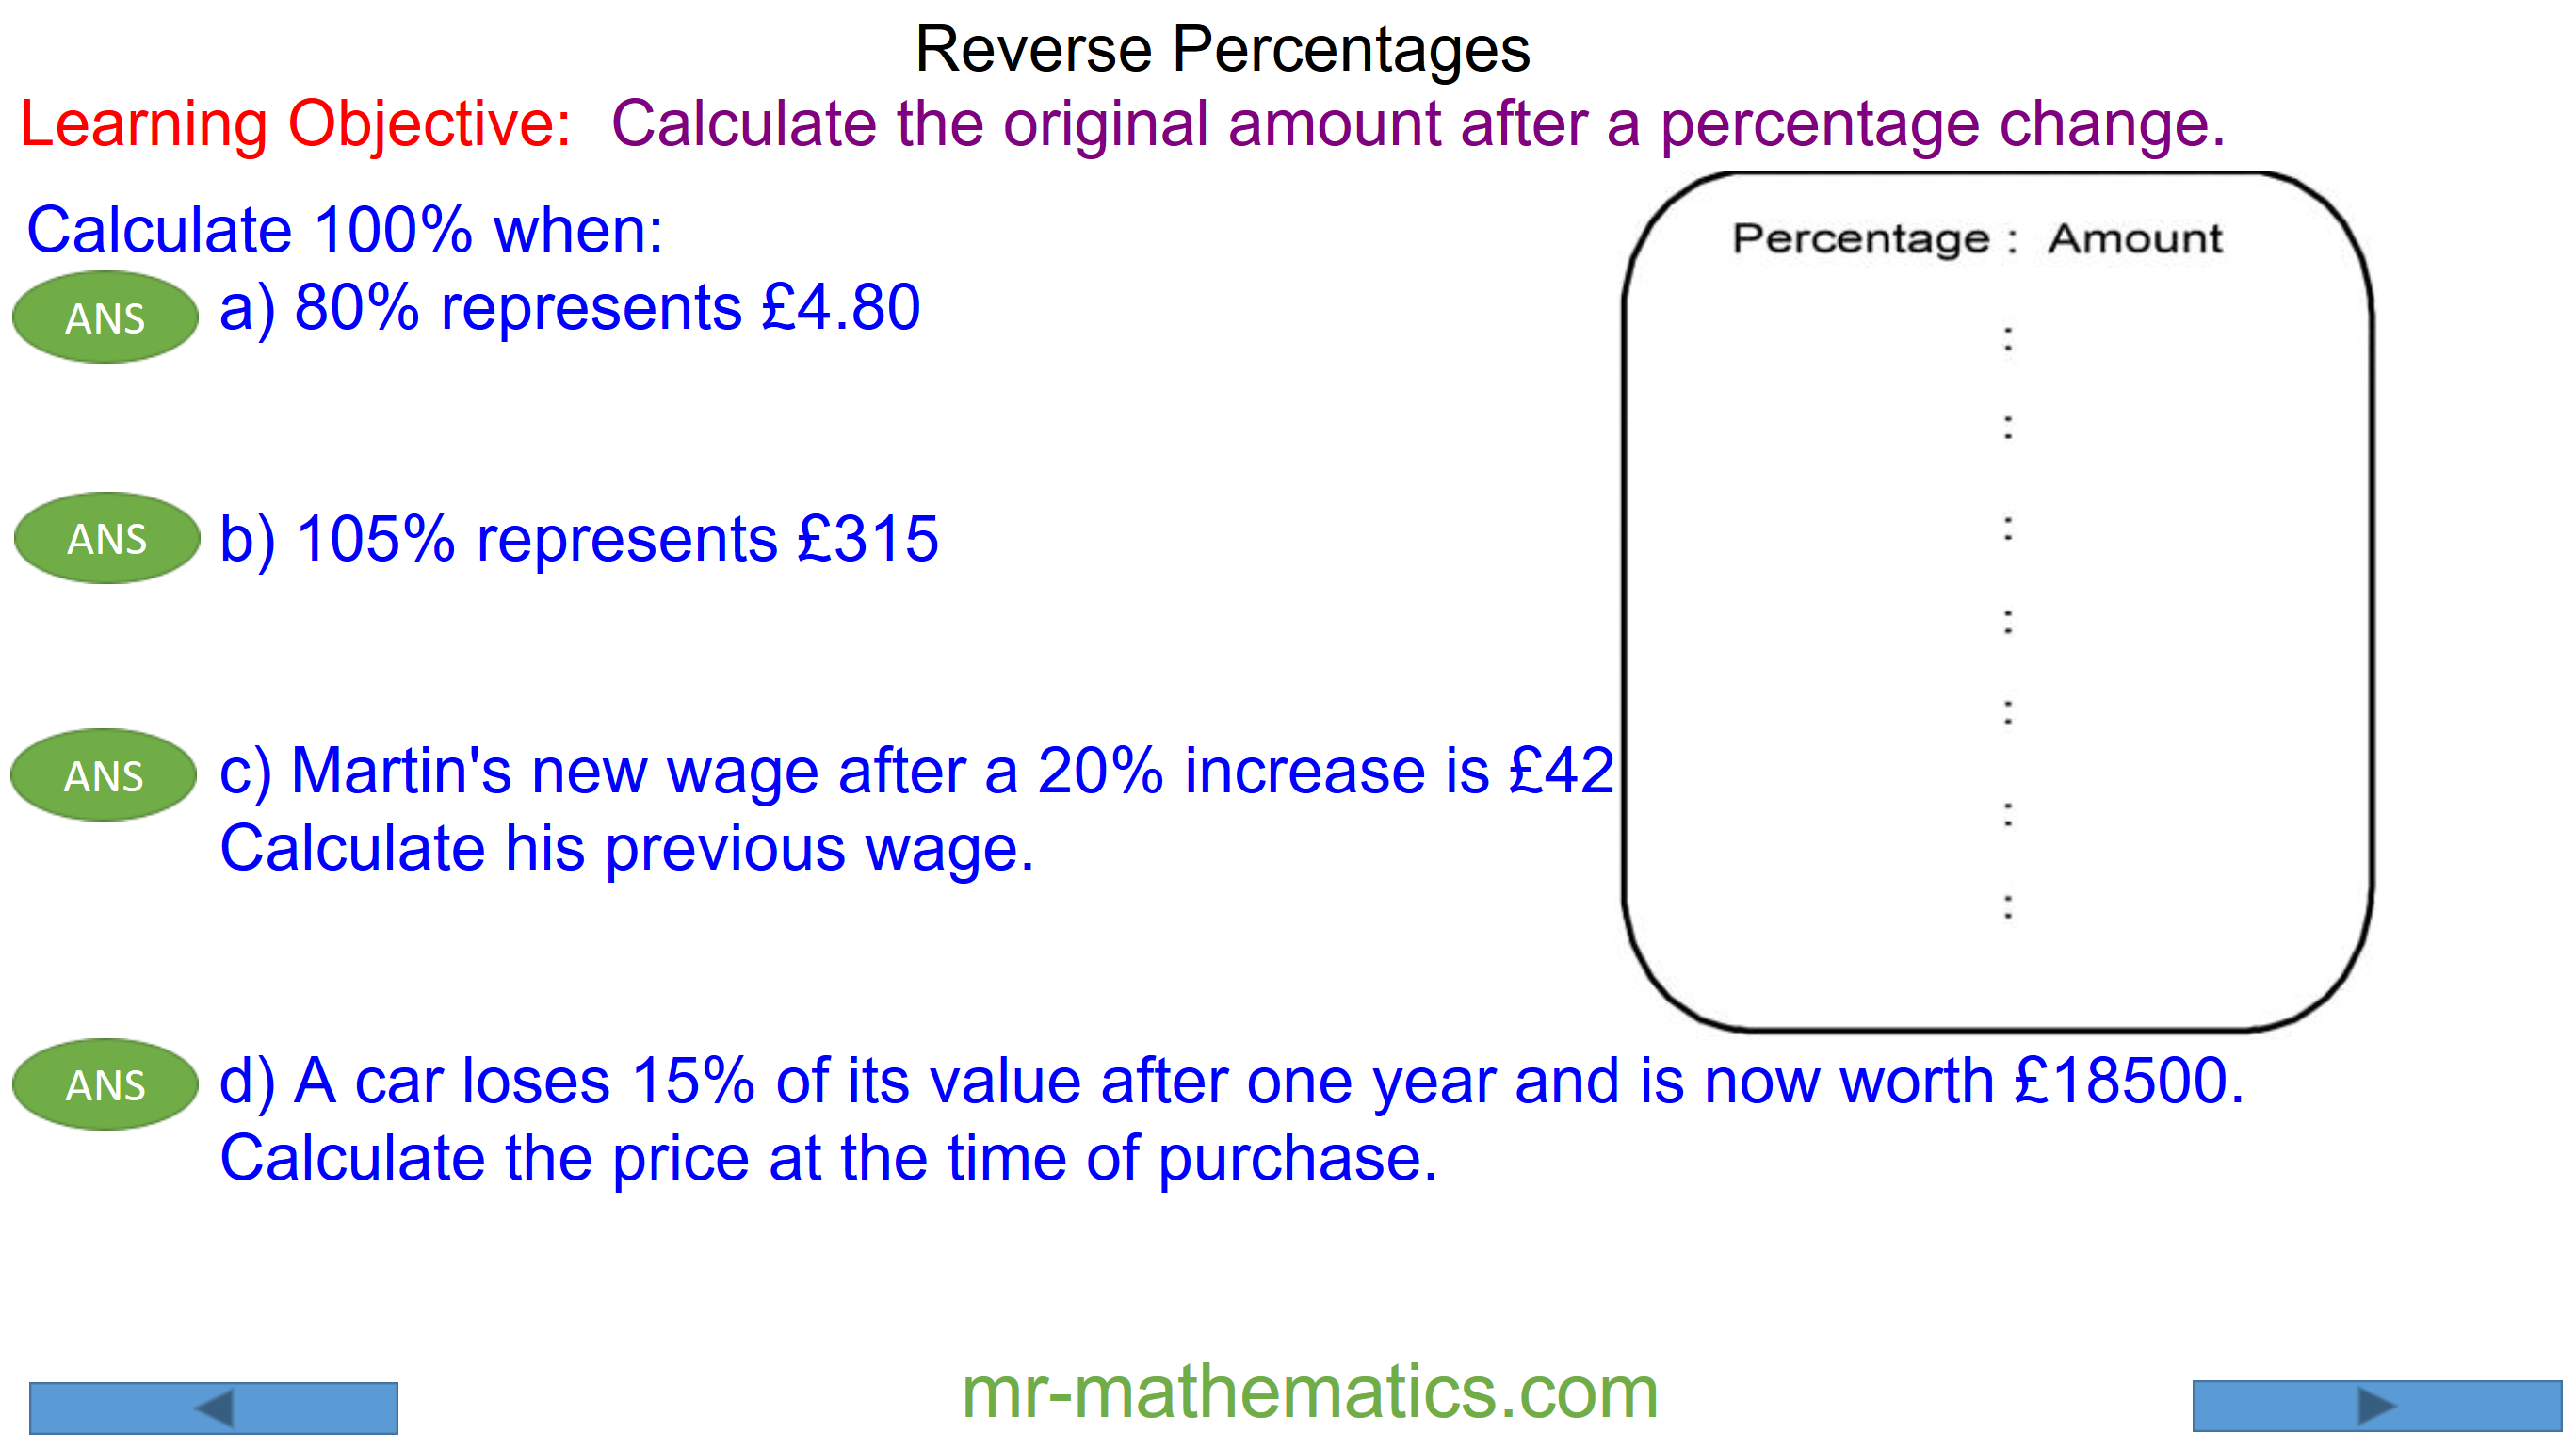 Calculating a Reverse Percentage